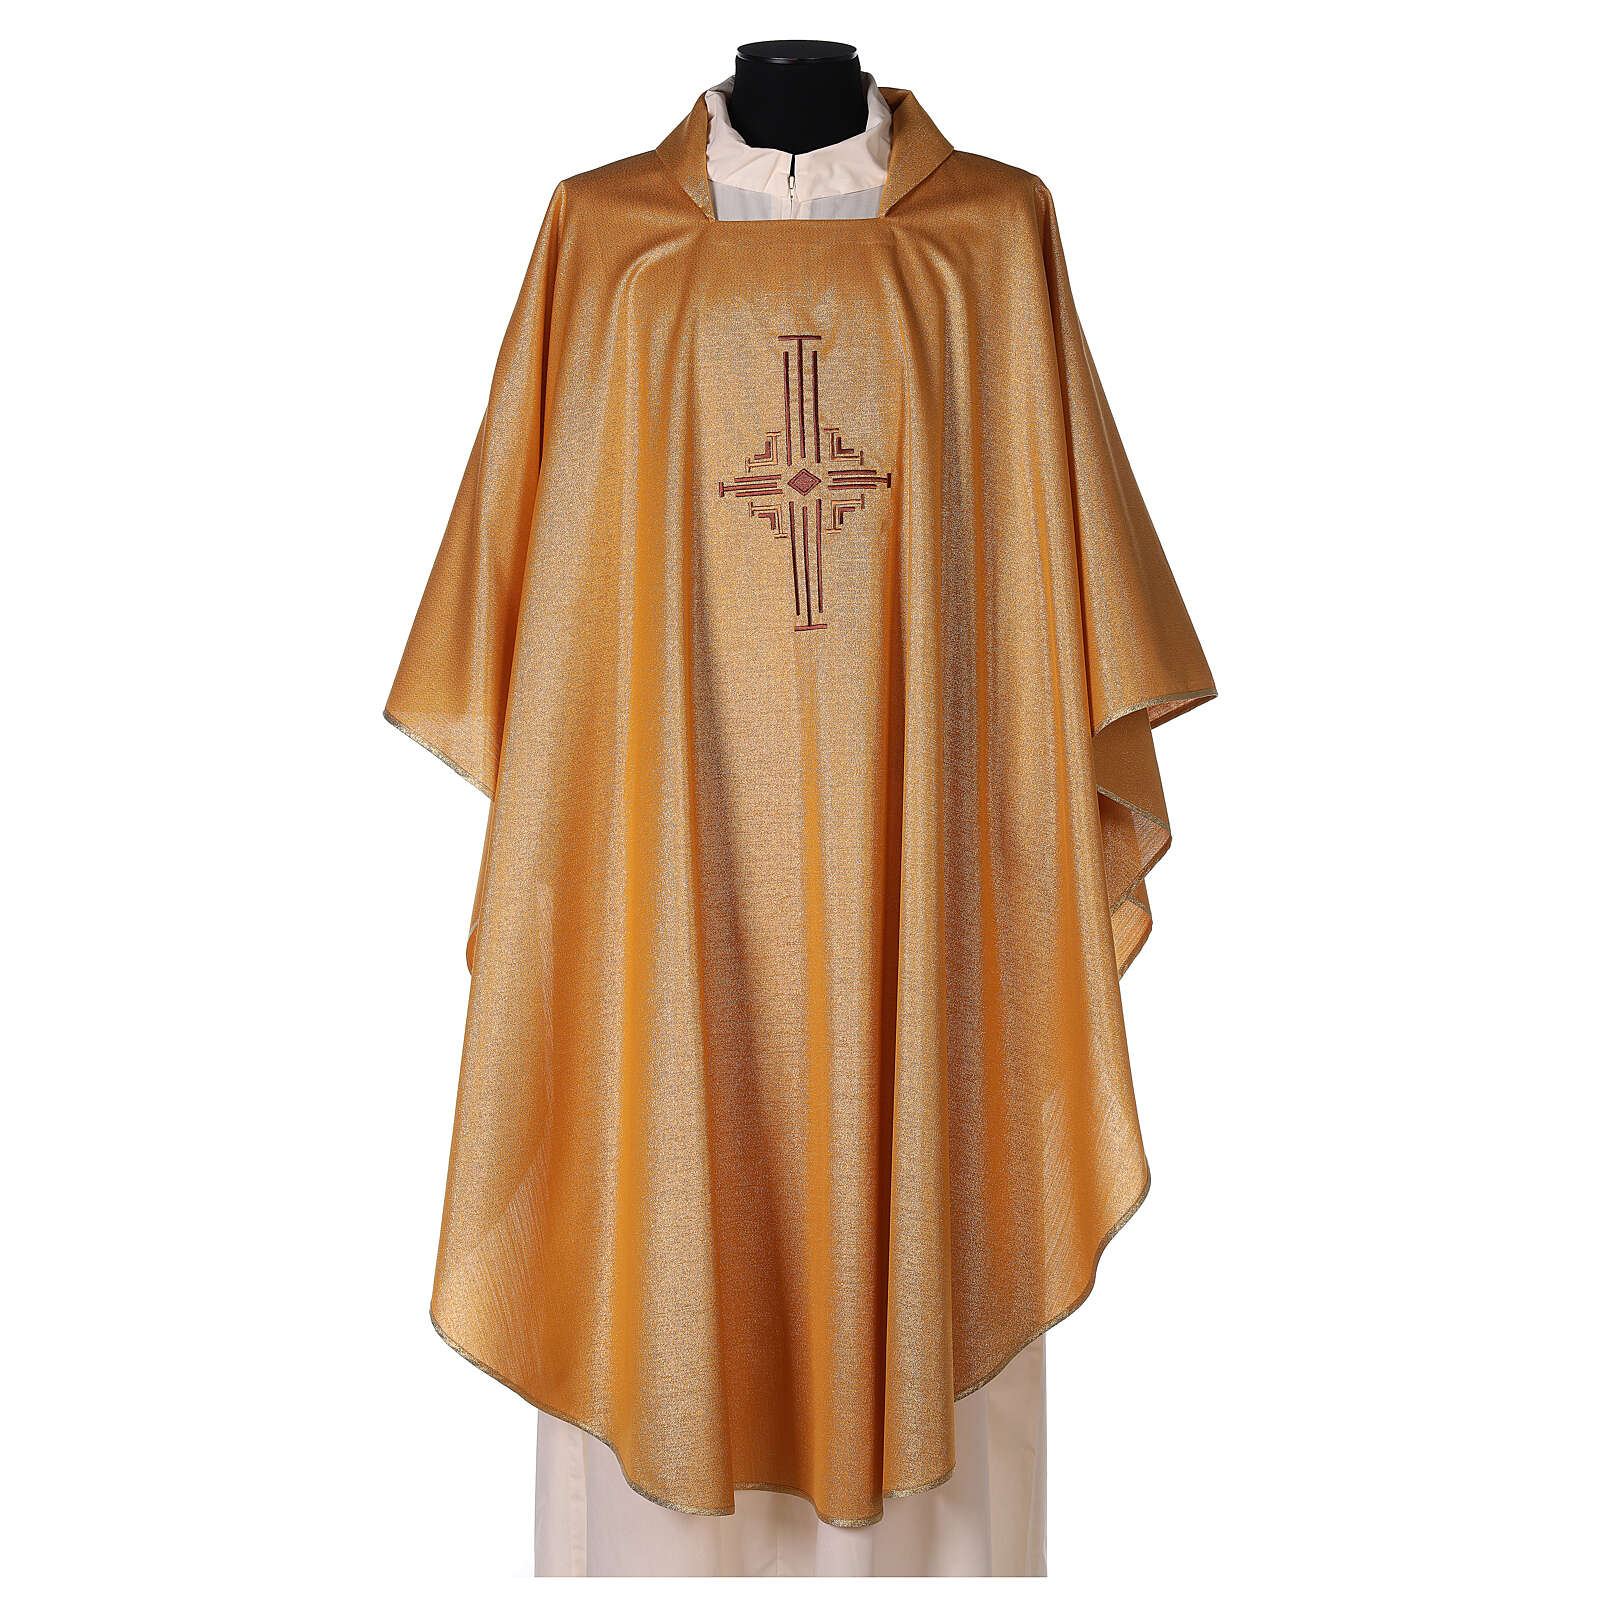 Gold Latin Chasuble in polyester with machine-embroidered cross on the front 4